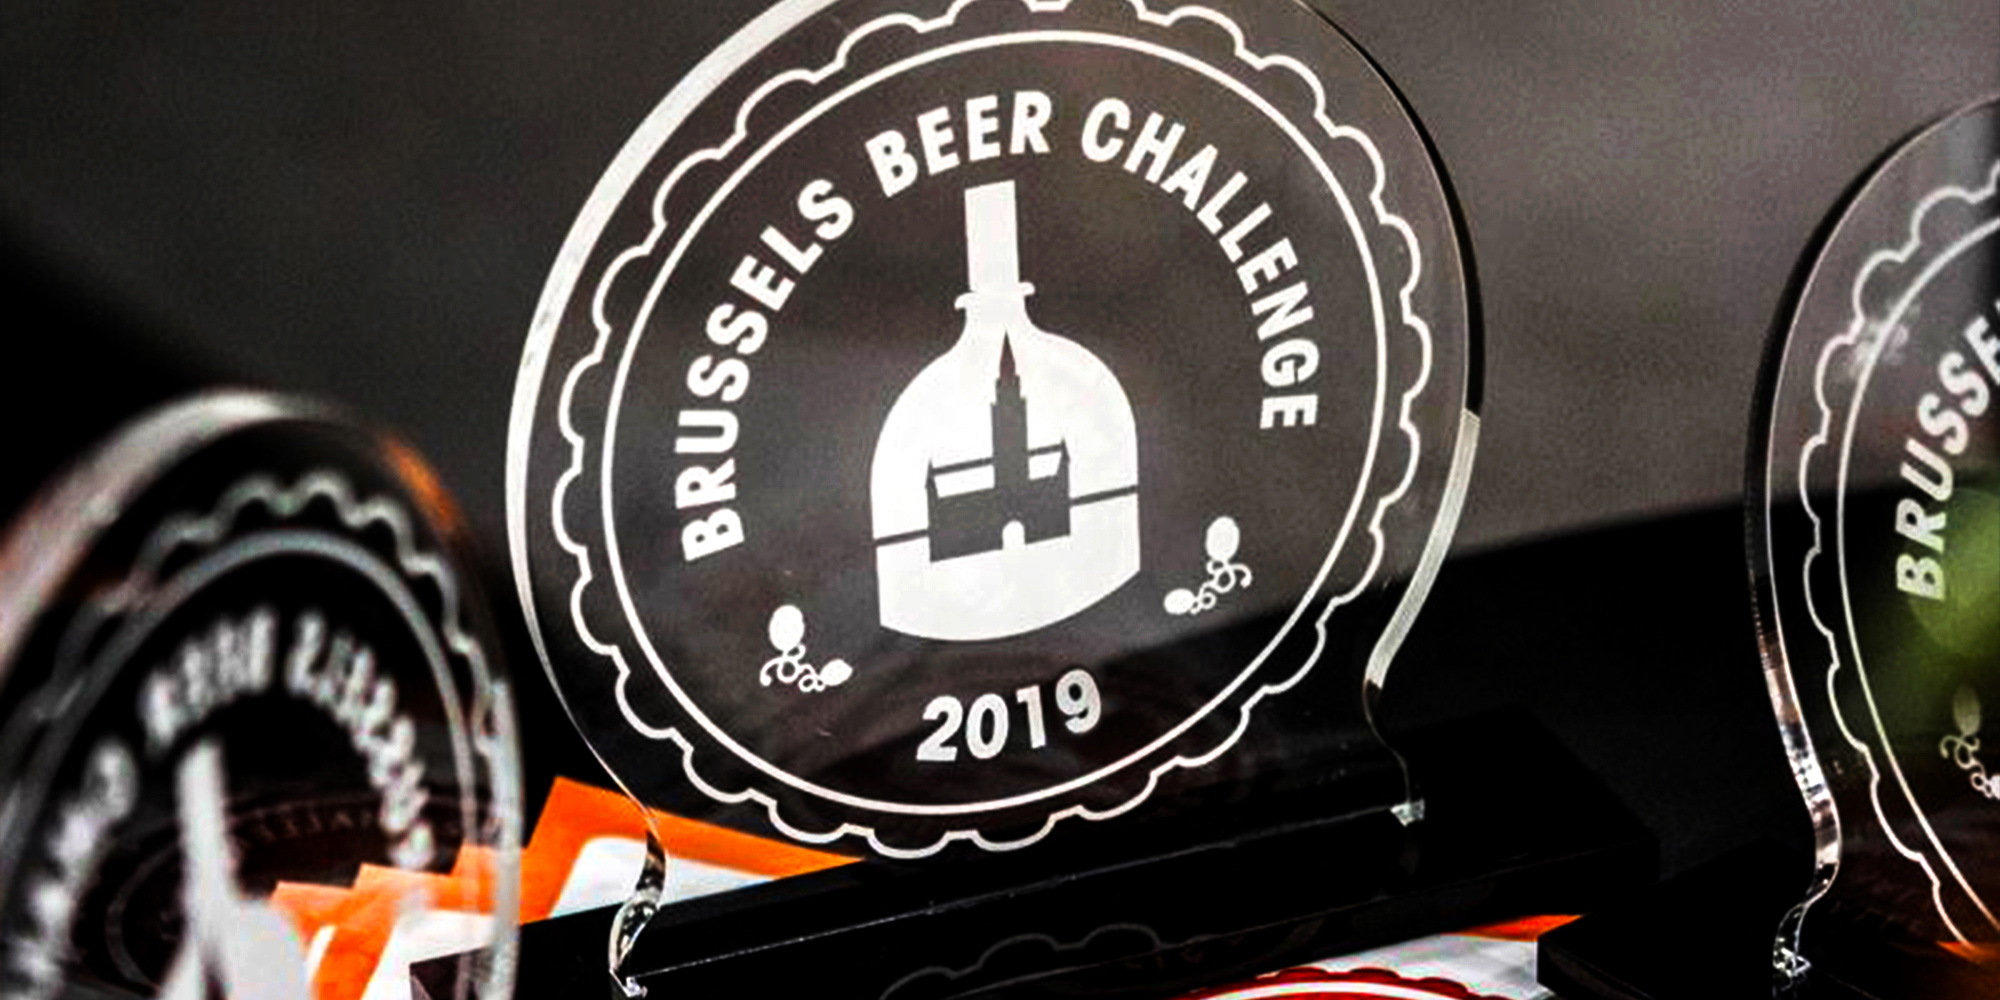 BRUSSELS BEER CHALLENGE AWARDS OTUS WITH A GOLDEN MEDAL FOR AMBRANERA AND A SILVER ONE FOR RED&GO